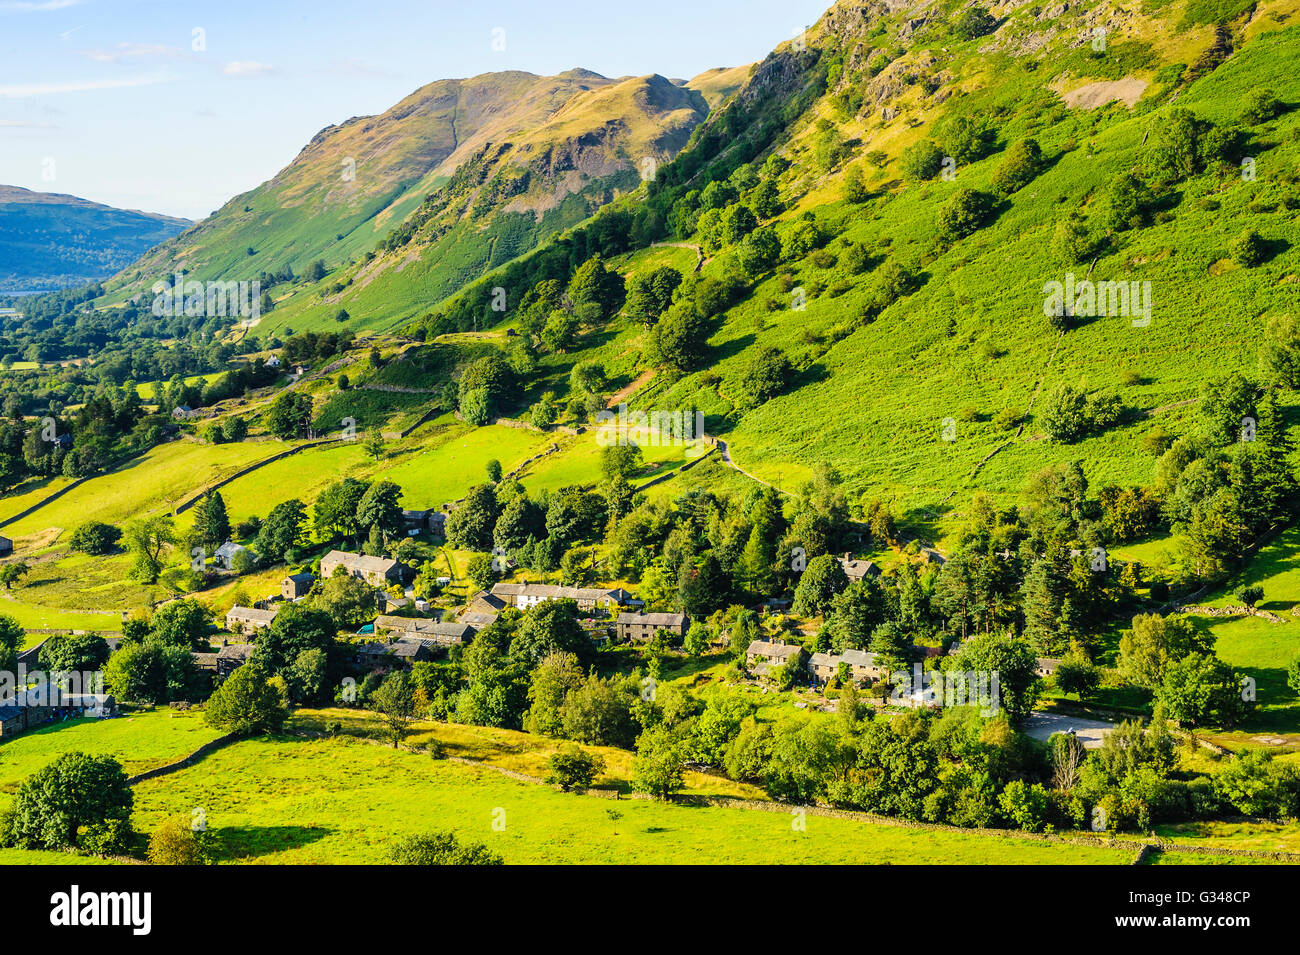 Hartsop village from the slopes of Hartsop Dodd in the eastern fells of the Lake District - Stock Image